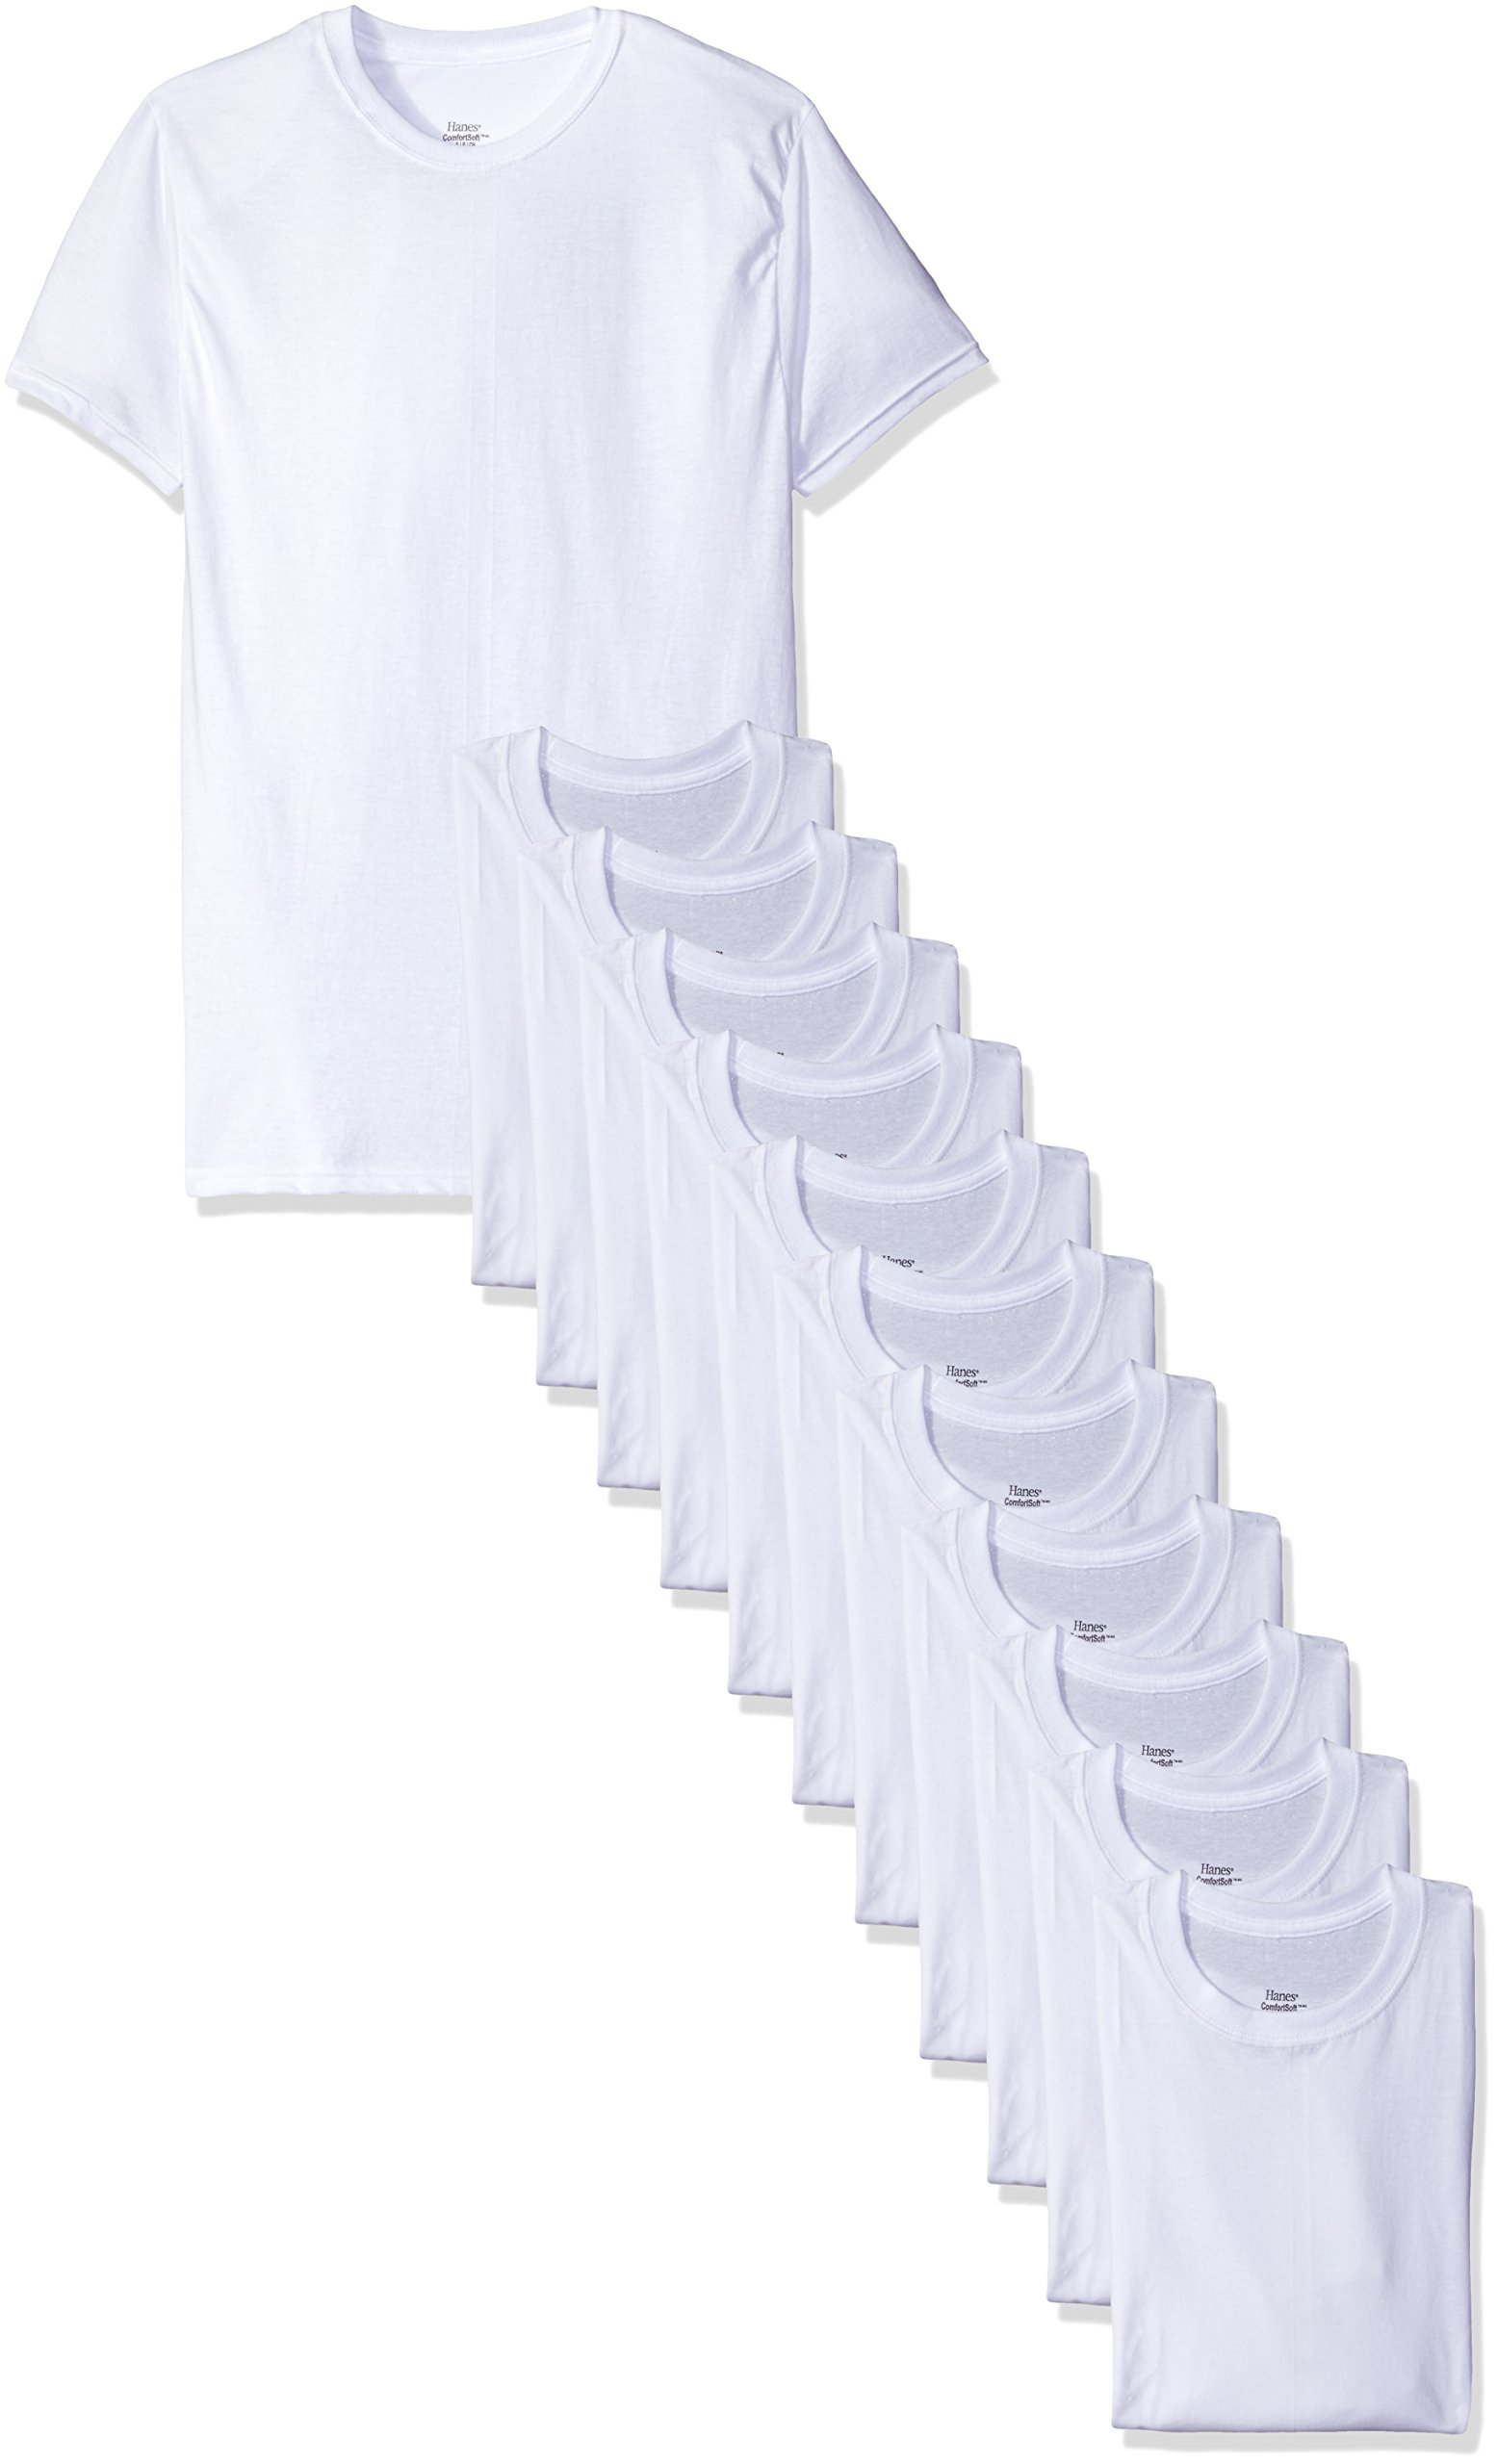 Hanes Men's 12-Pack Crew T-Shirt, White, Large by Hanes